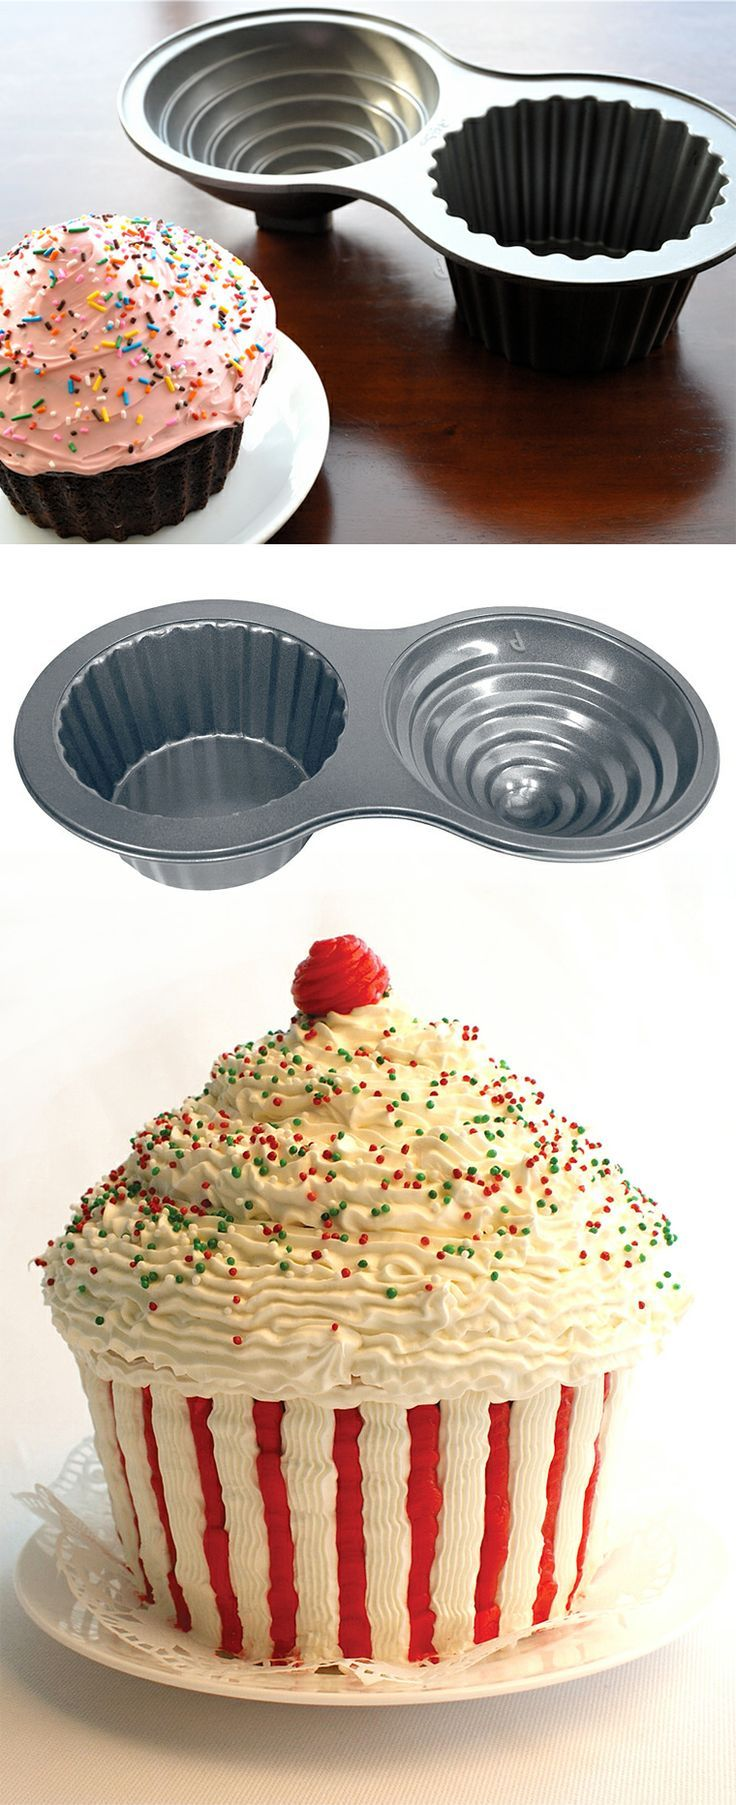 The best way to make a giant and impressive cupcake for the birthday party by this non-stick large cupcake pan. The non-stick surface makes sure an easy removal and hassle free clean up. Once the cupcake baked, cool down it and put together the two parts of cupcake by an icing layer and decorate it as you want. Price $8.75